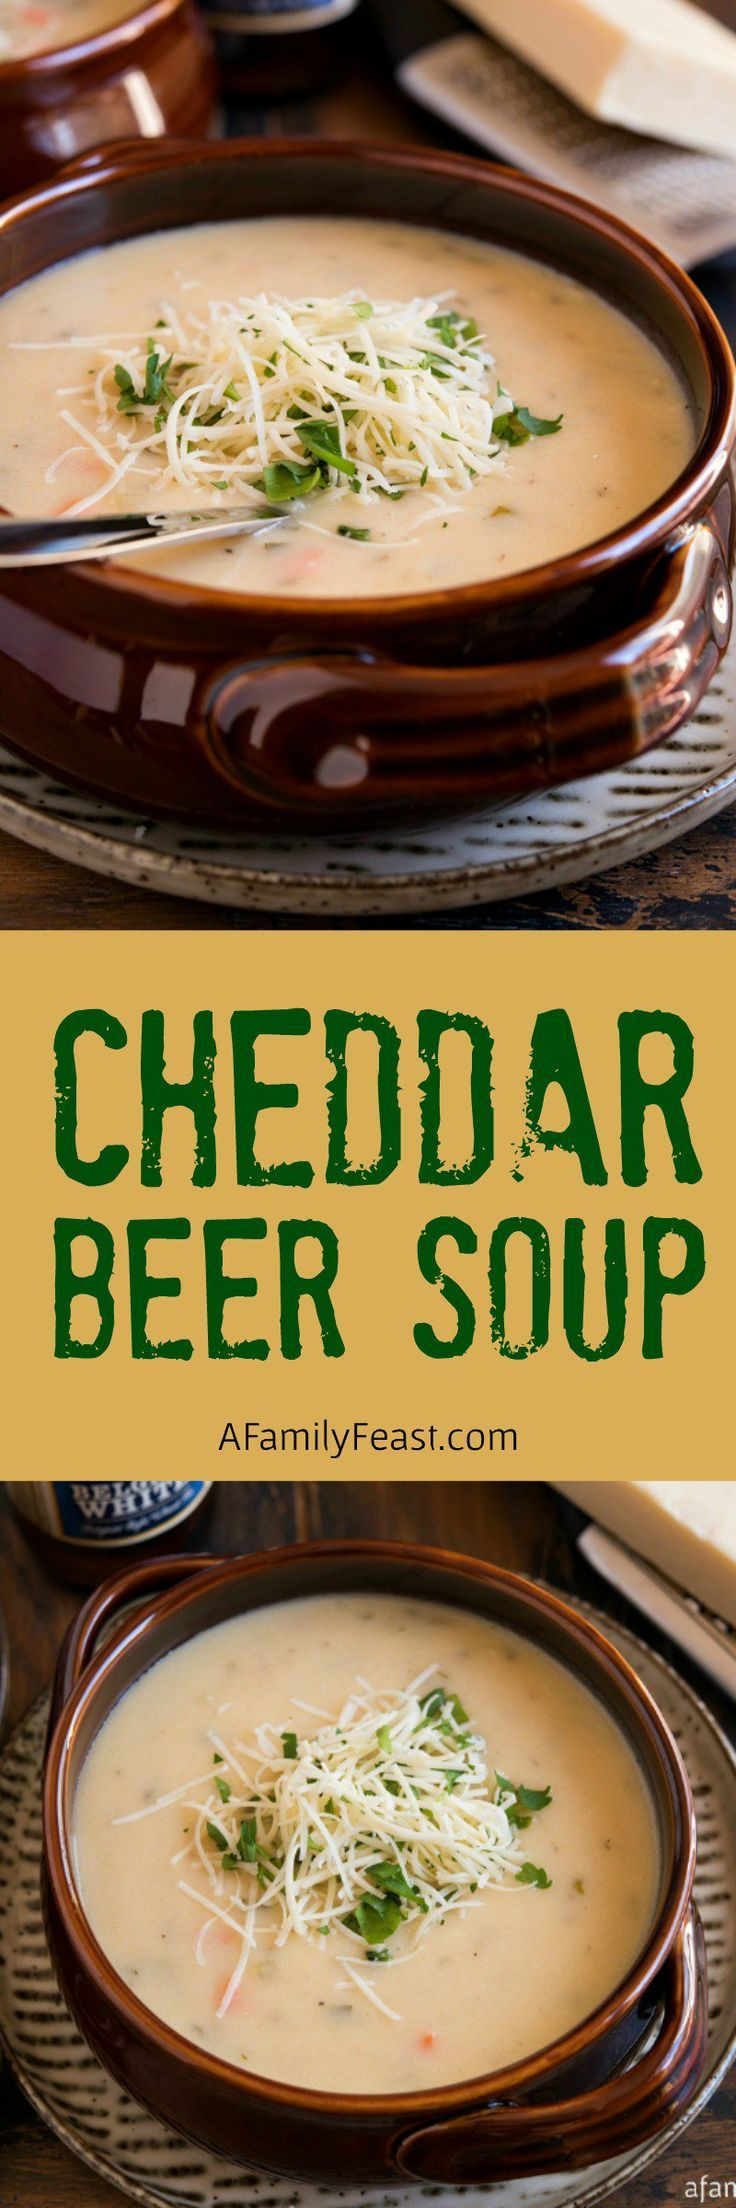 Cheddar cheese and a smooth, pale ale are the perfect pair in this creamy, delicious Cheddar Beer Soup! via @afamilyfeast